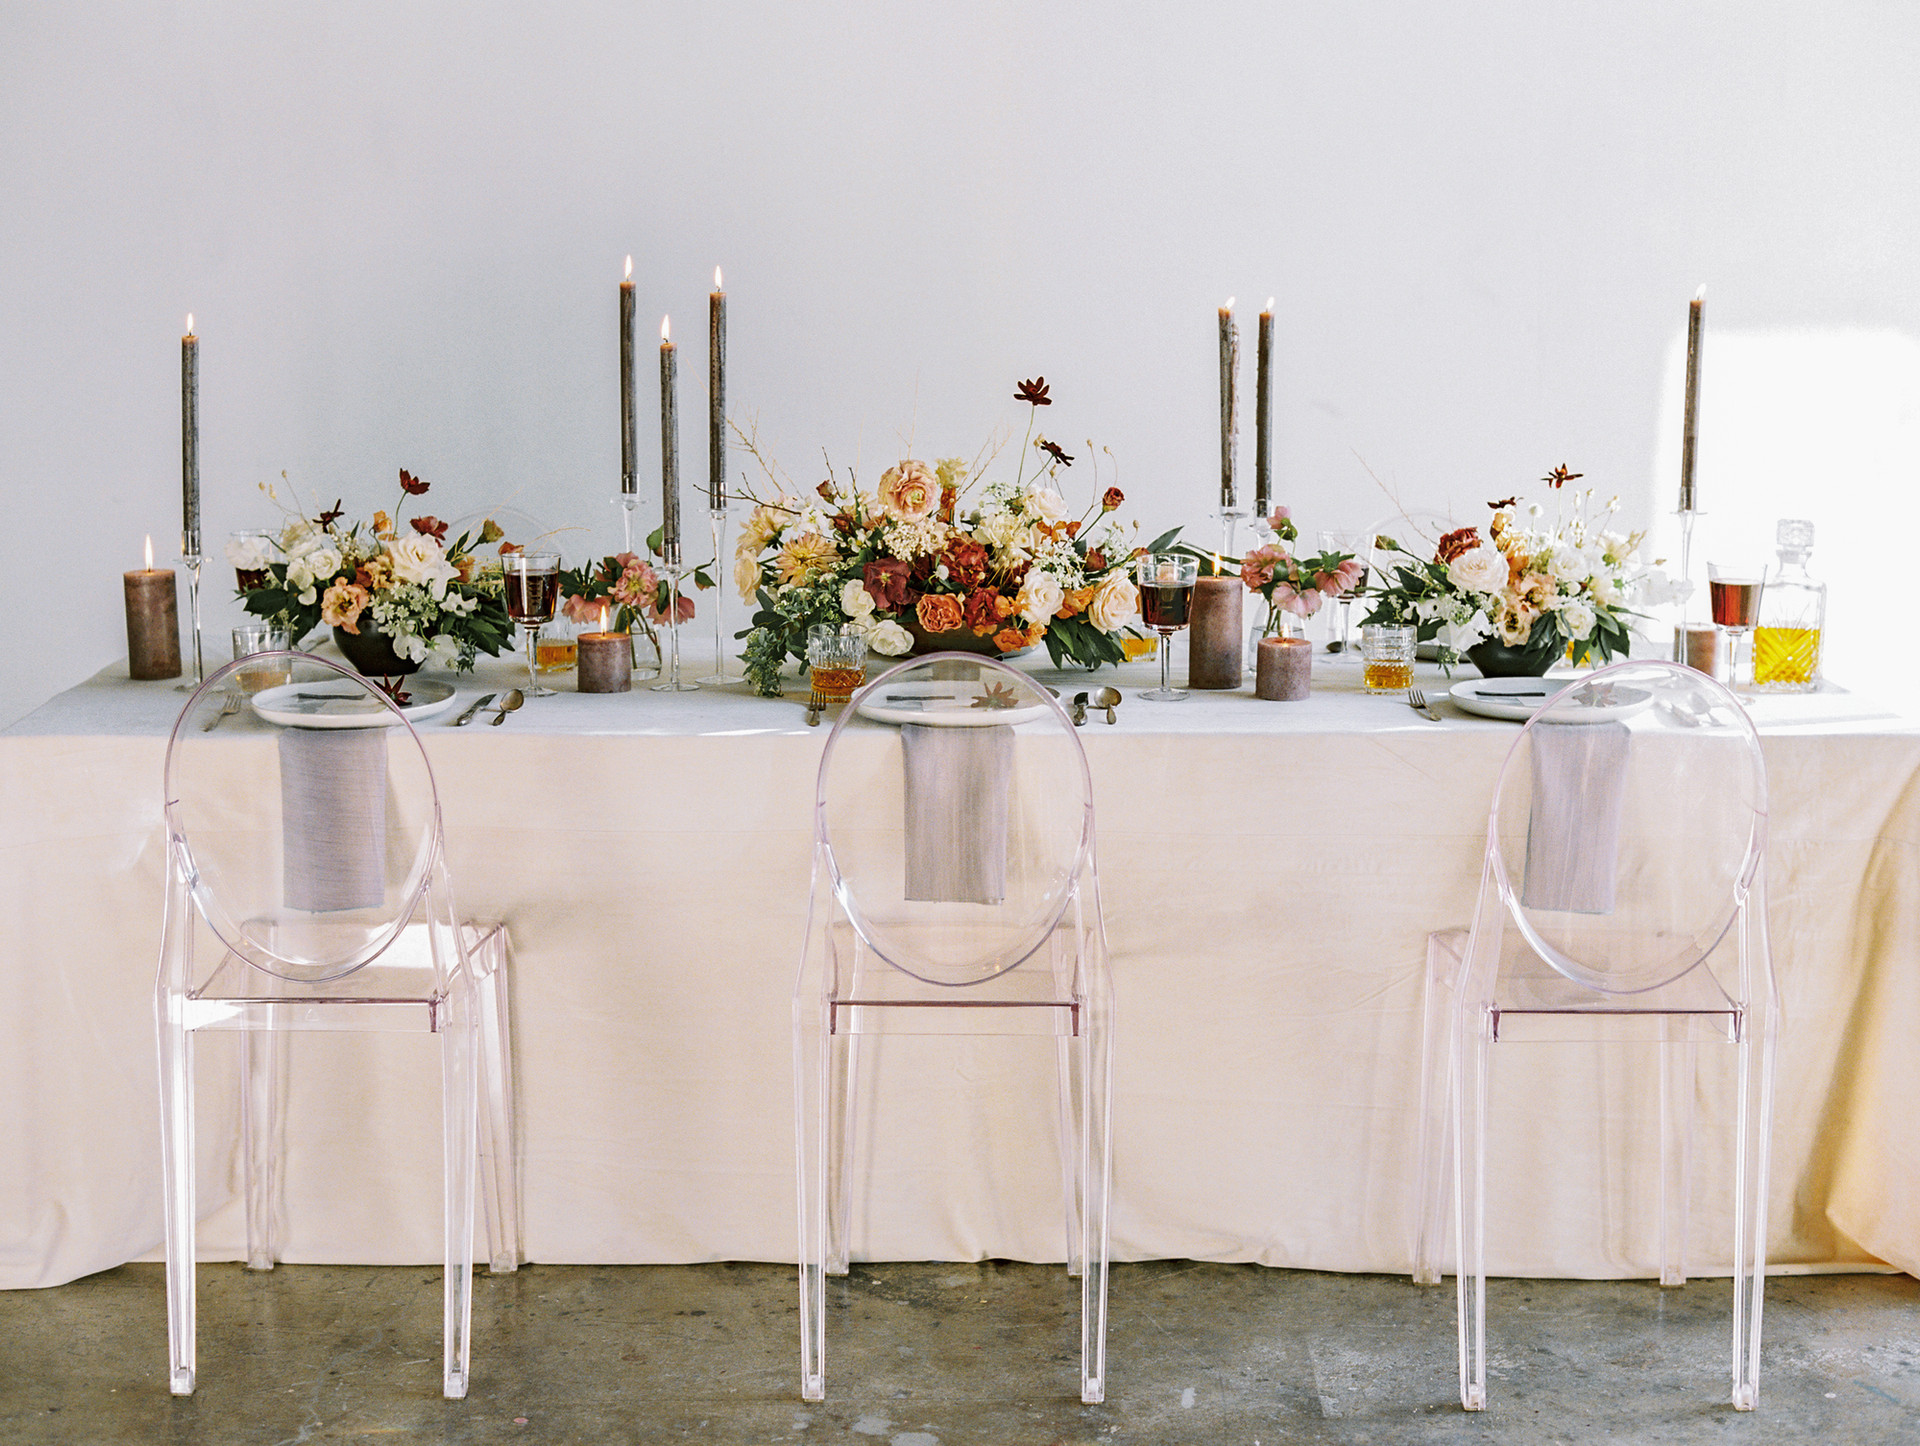 Organic and moody tablescape. Photo: Gaby Jeter